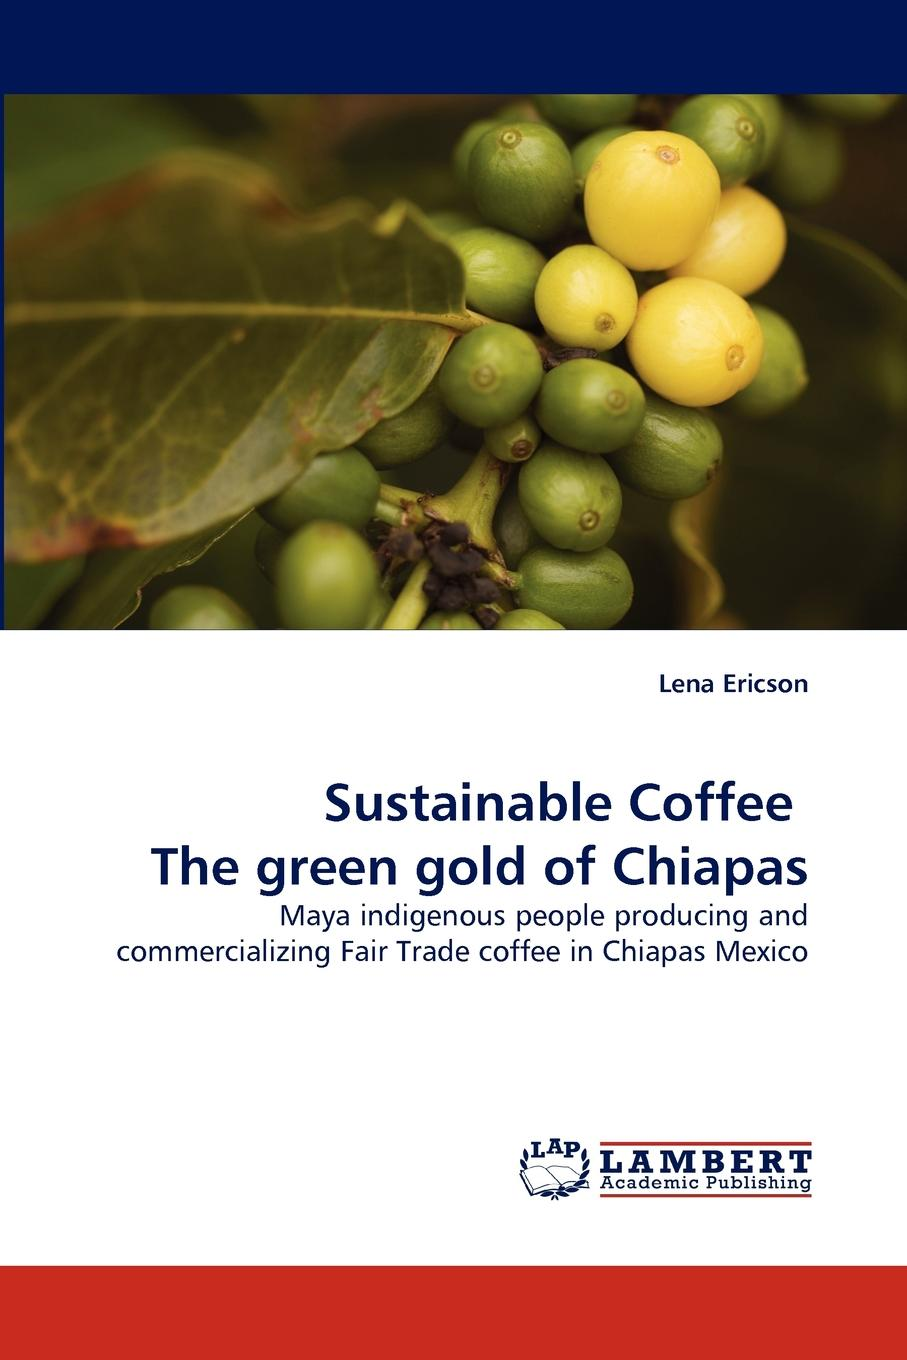 Lena Ericson Sustainable Coffee The green gold of Chiapas role of coffee companies in promoting coffee smallholders in arusha